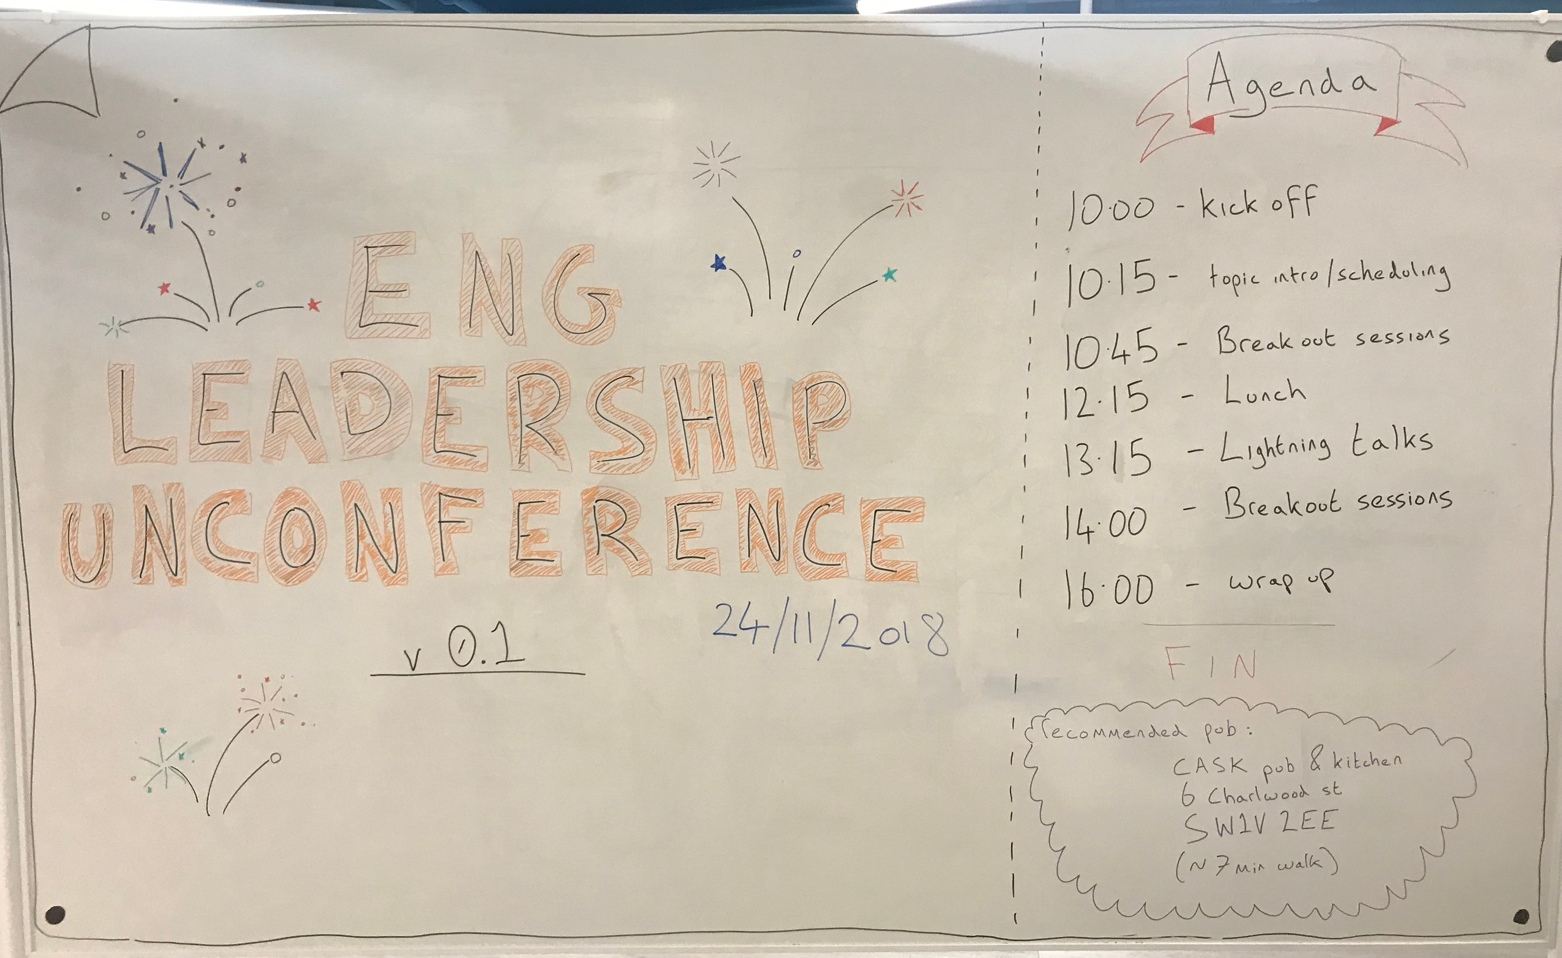 Engineering Leadership Unconference